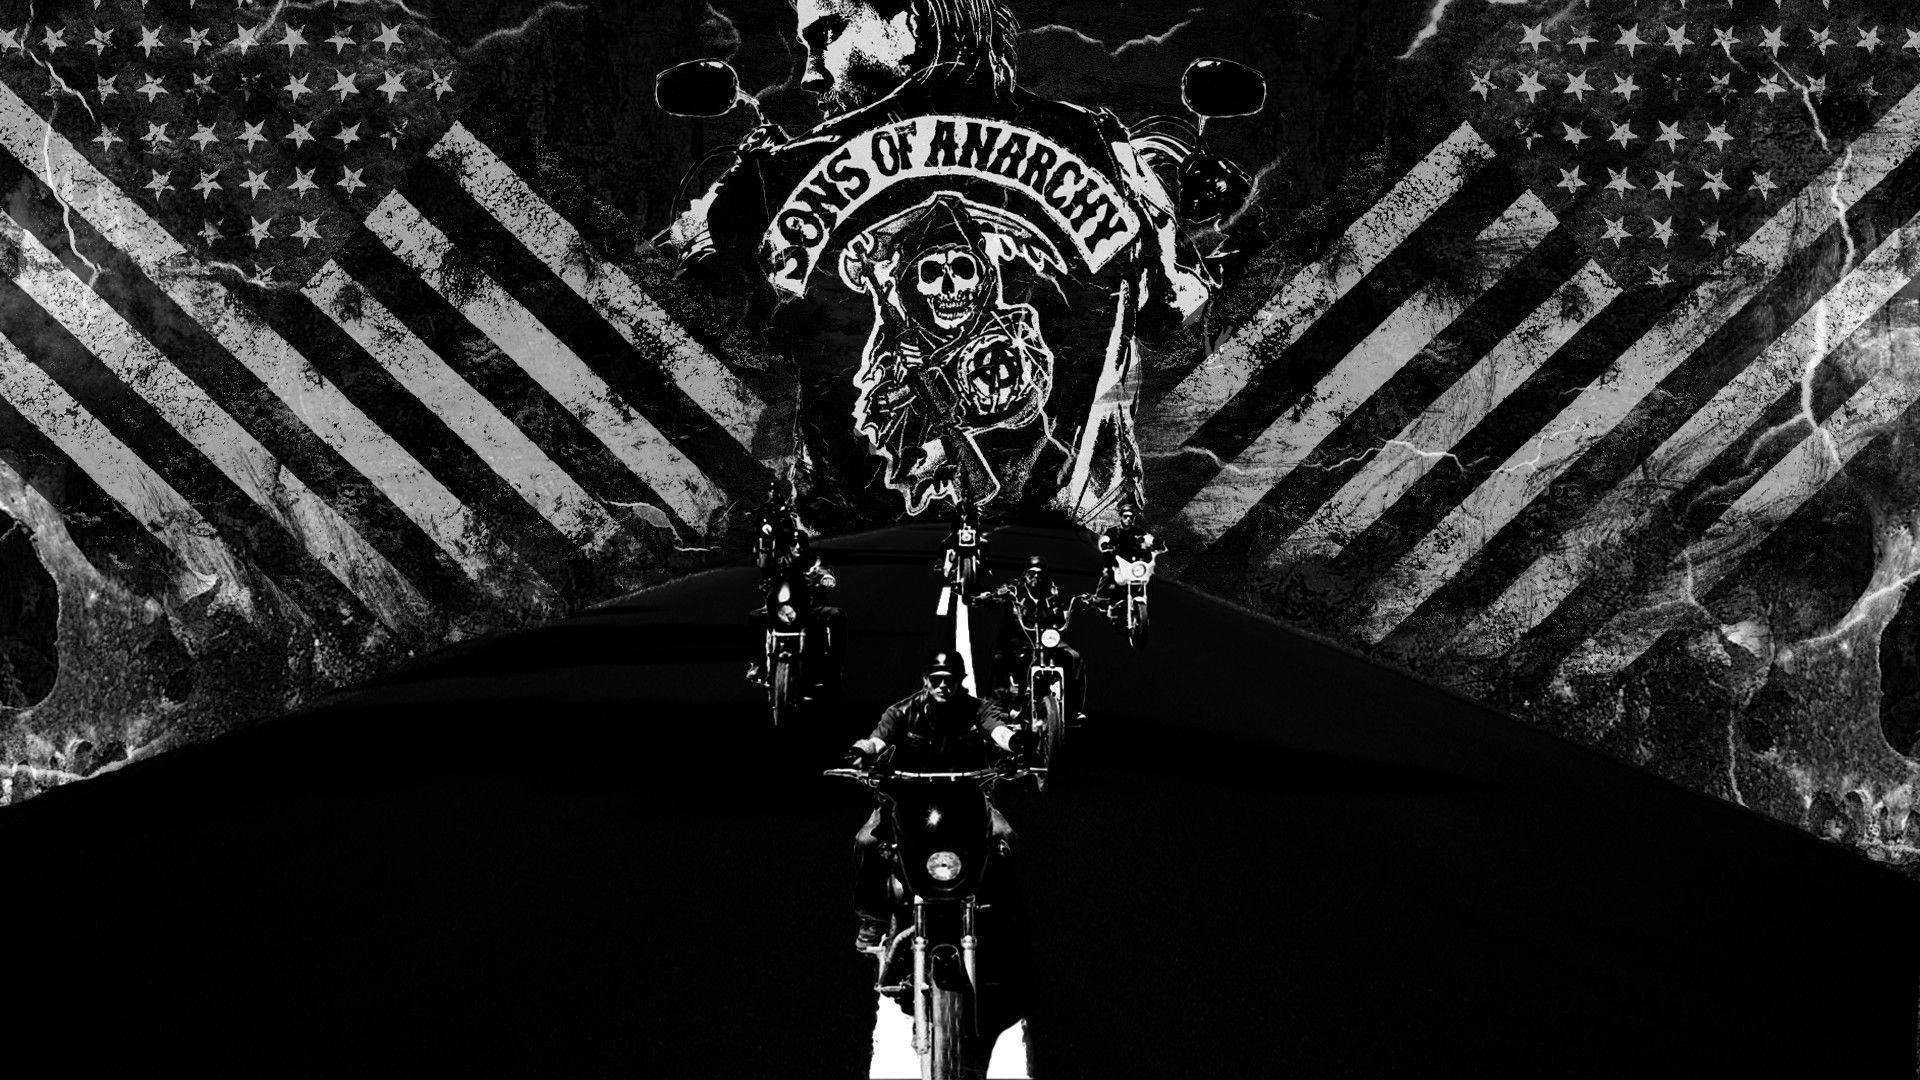 Sons Of Anarchy Wallpaper By Oultre On DeviantArt